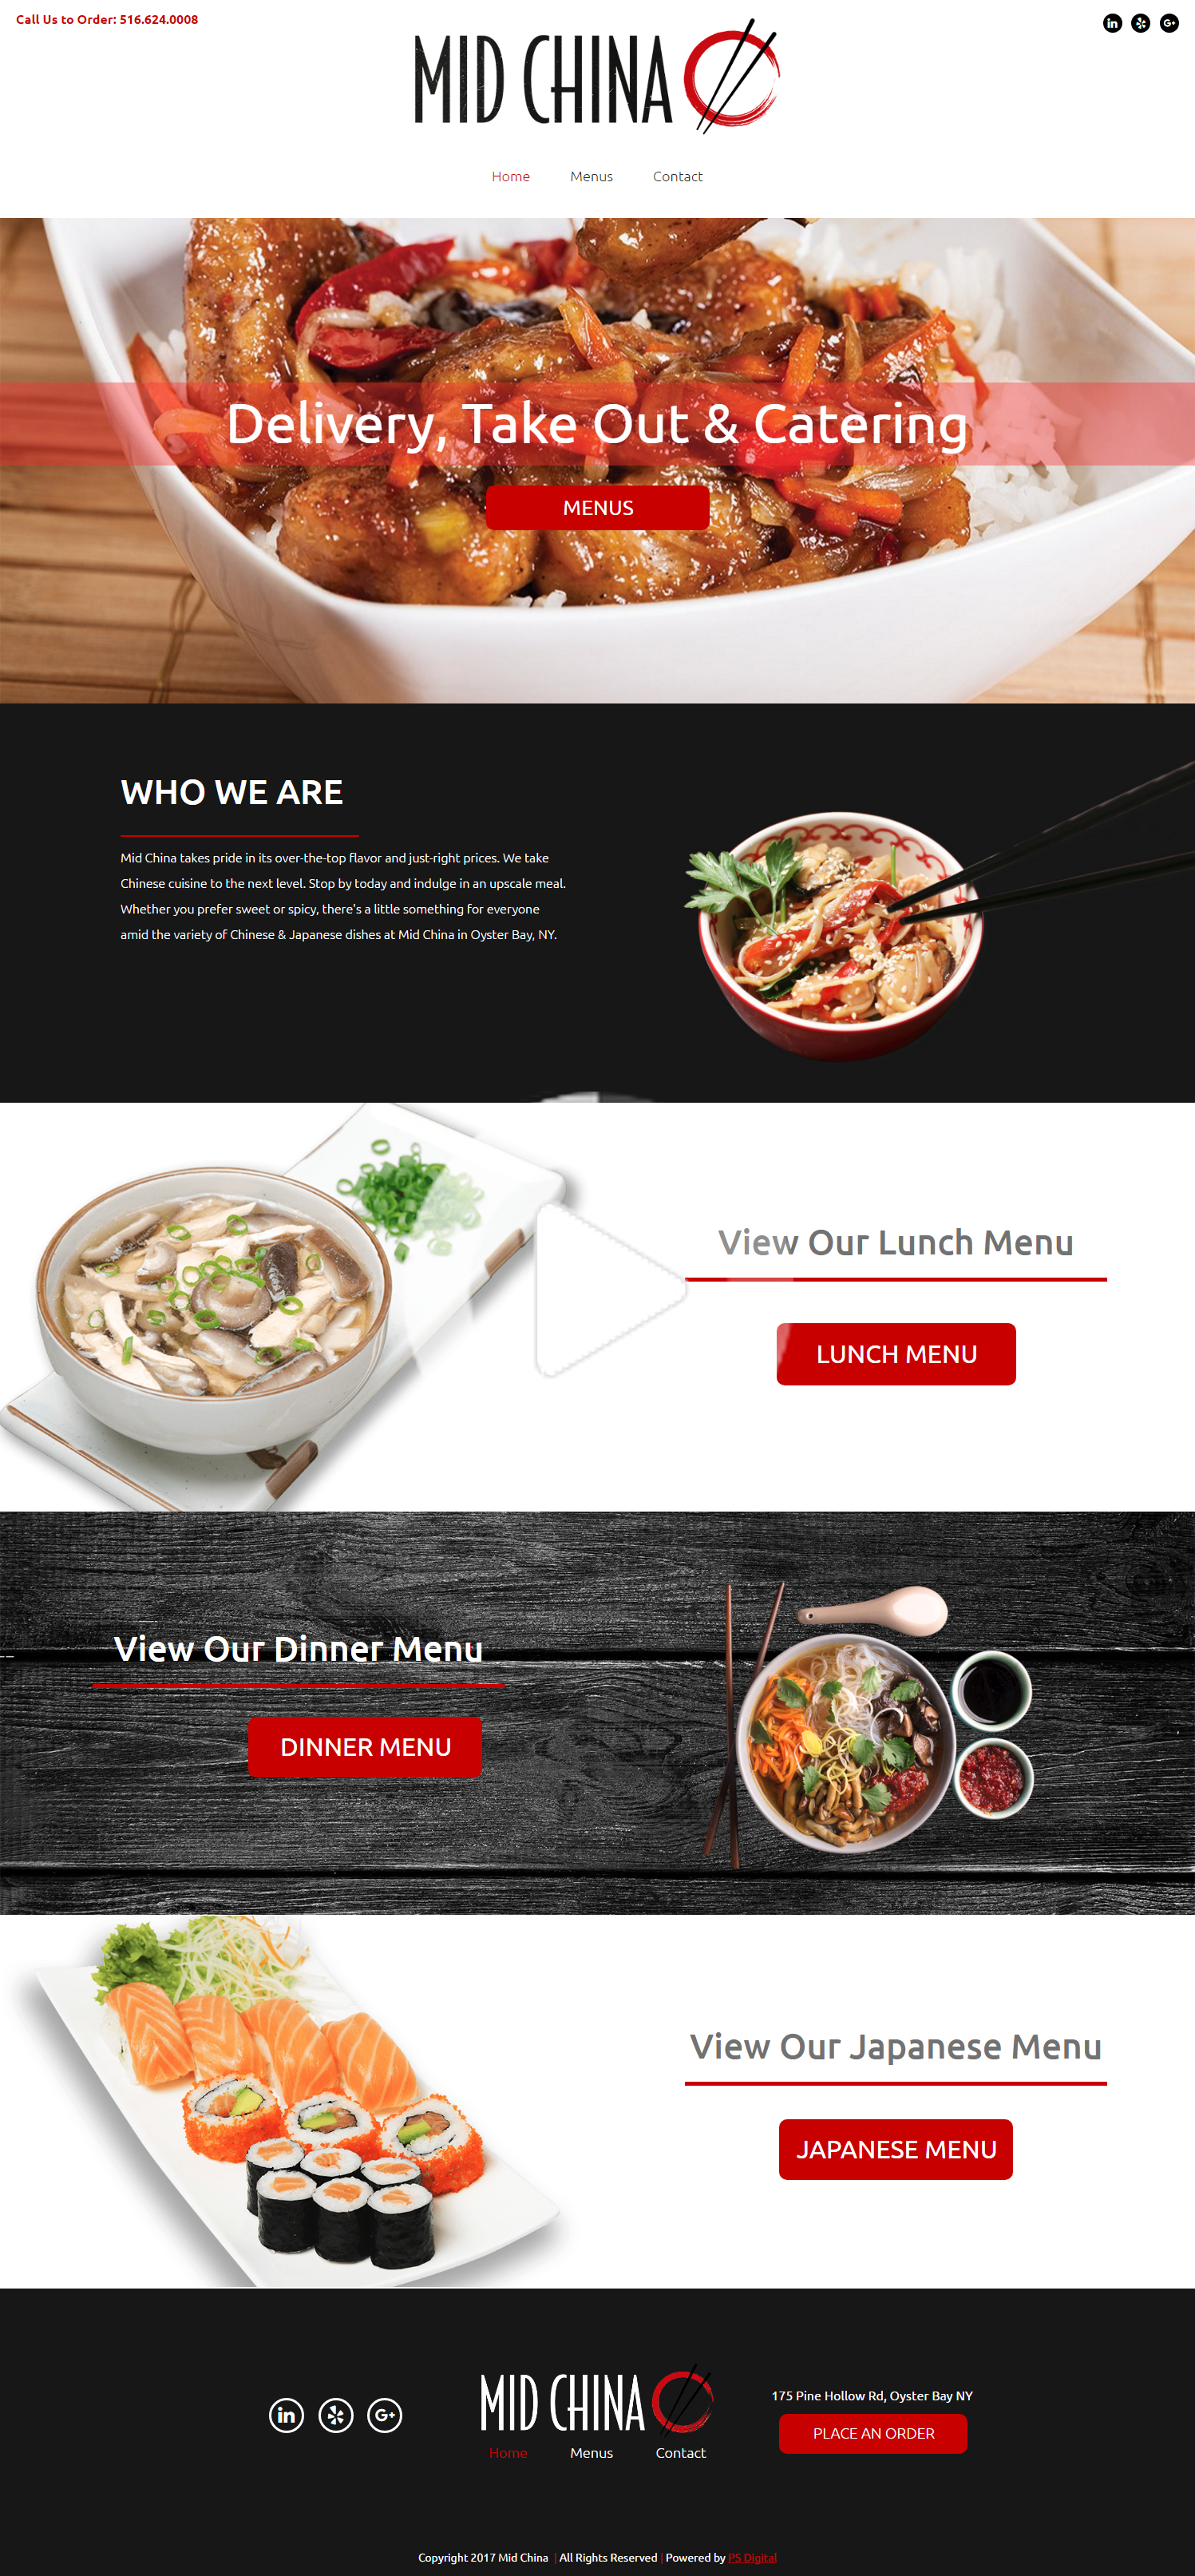 Chinese Food Restaurant Web Design Layout In 2020 Chinese Food Restaurant Food Website Design Restaurant Web